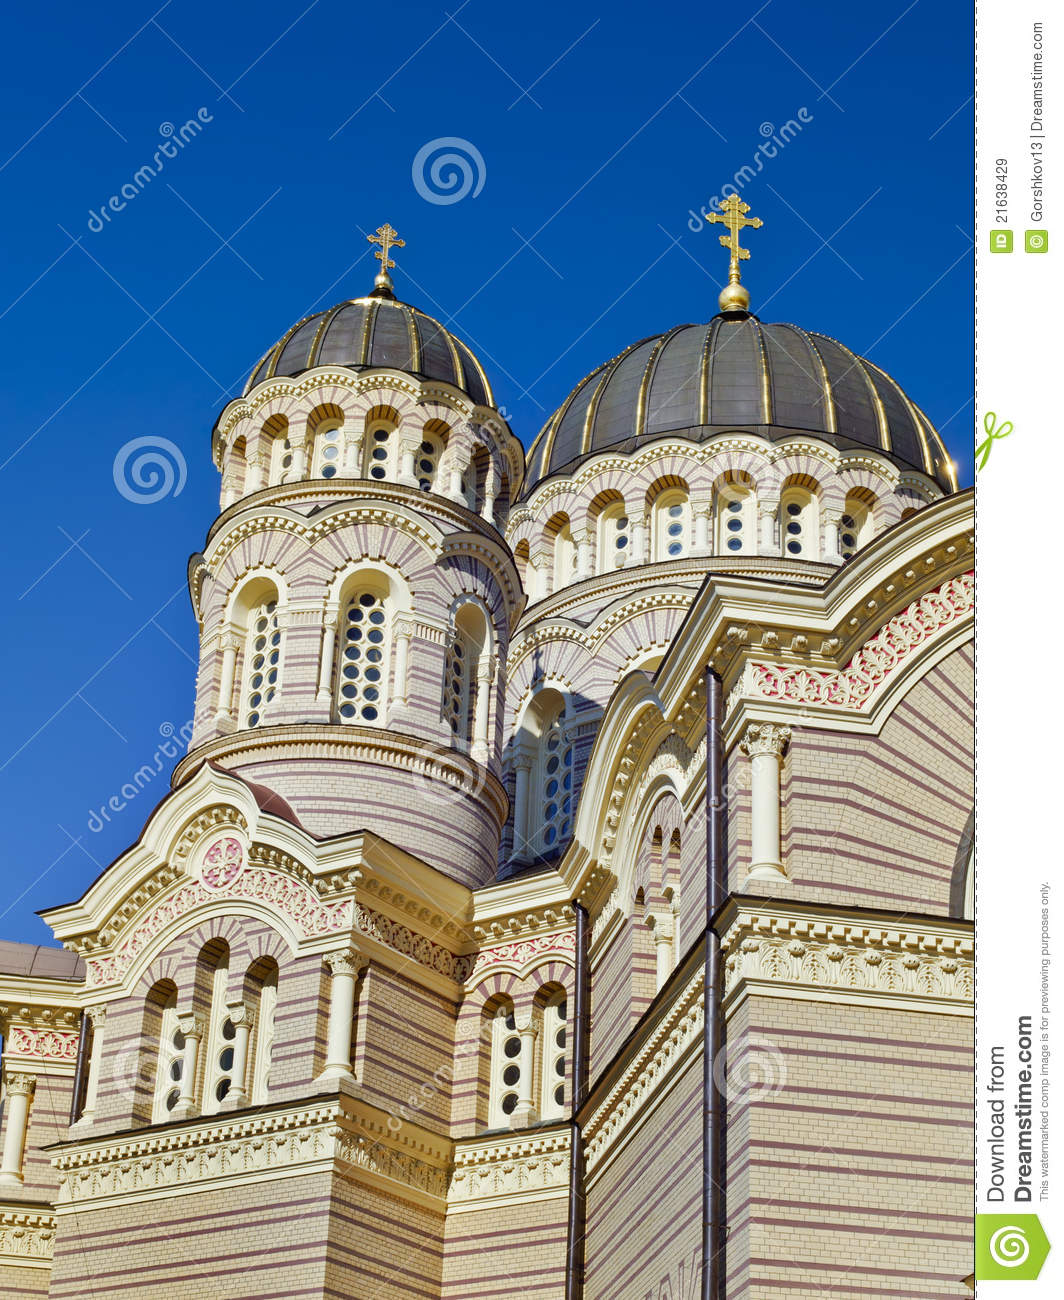 an analysis of the russian orthodox church structure Orthodox christians share a common understanding of doctrine, an emphasis on sacramental forms of worship, and the veneration of icons however, these elements have been elaborated in different cultural contexts for many centuries having established settlements in alaska, the russian orthodox church was the first orthodox church in the new world.